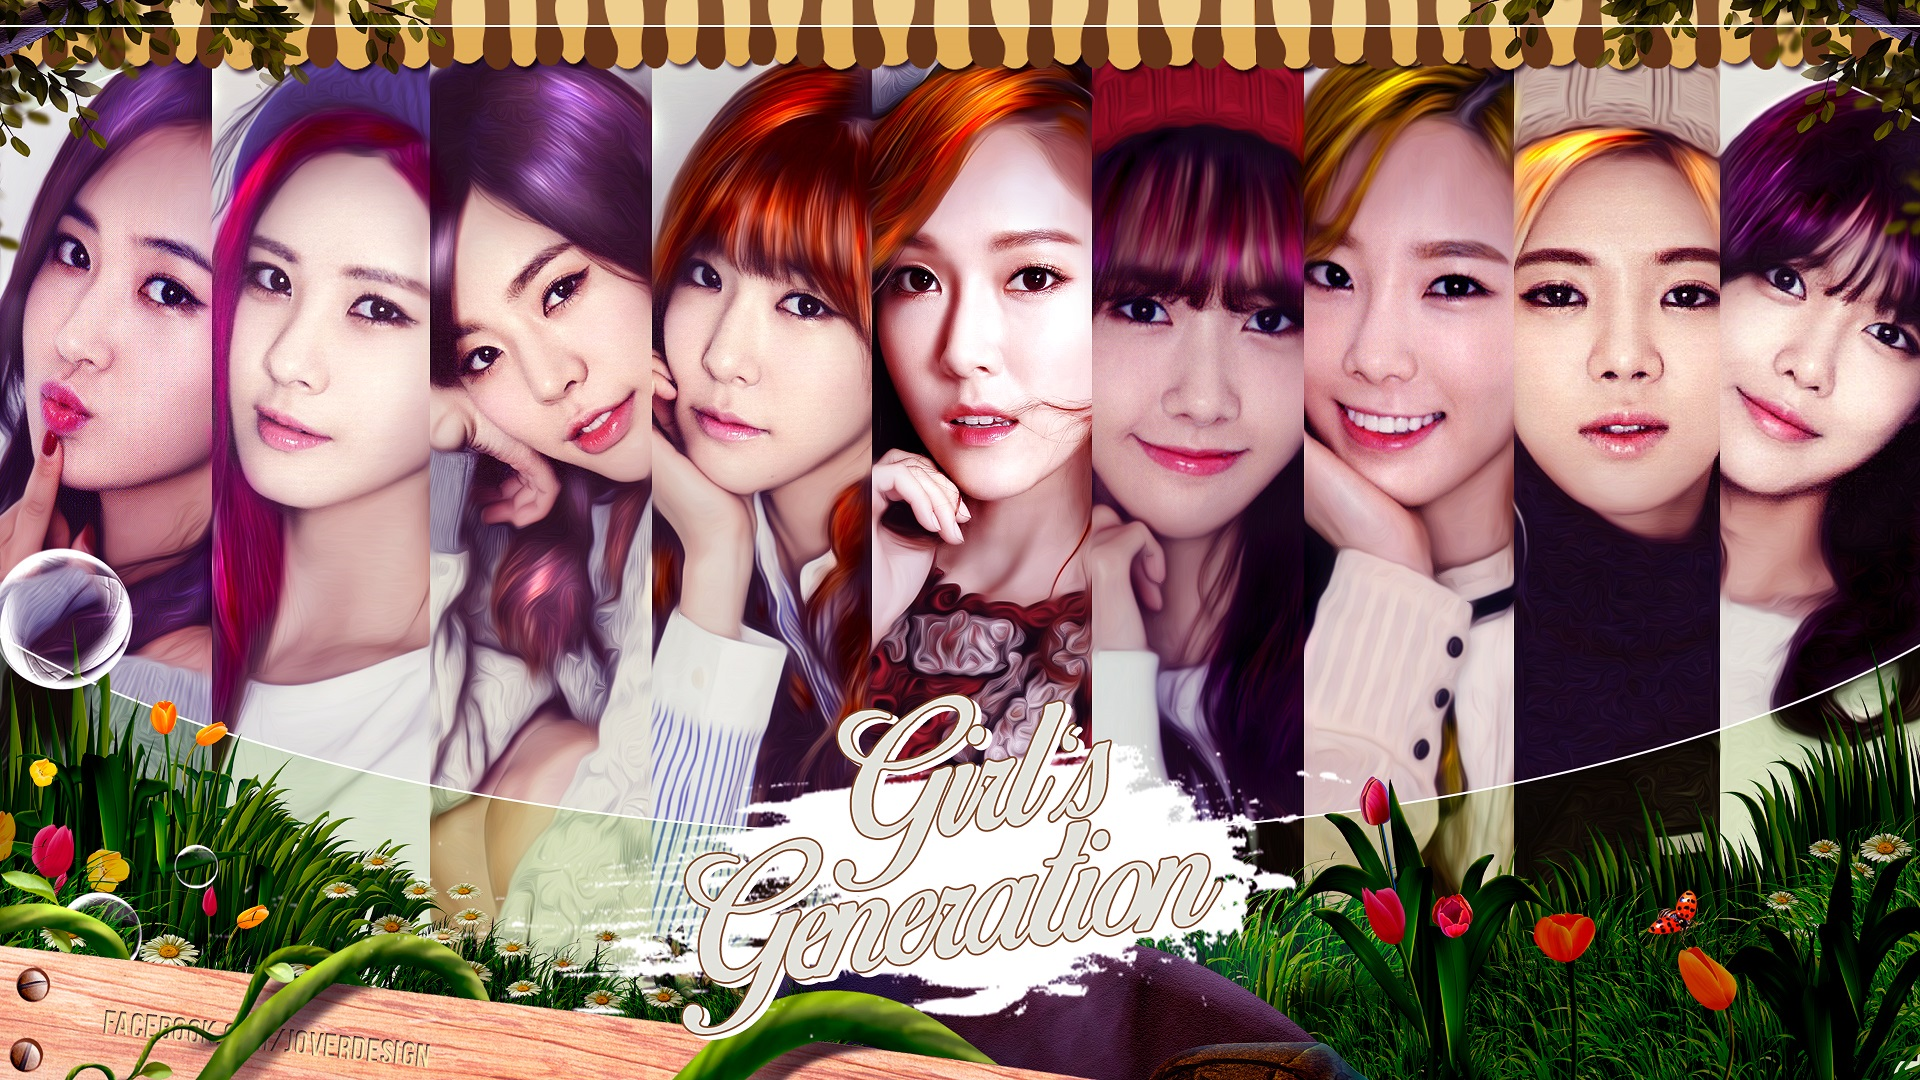 Girls Wallpapers 2015: Girls Generation 2015 Wallpaper By Jover-Design On DeviantArt